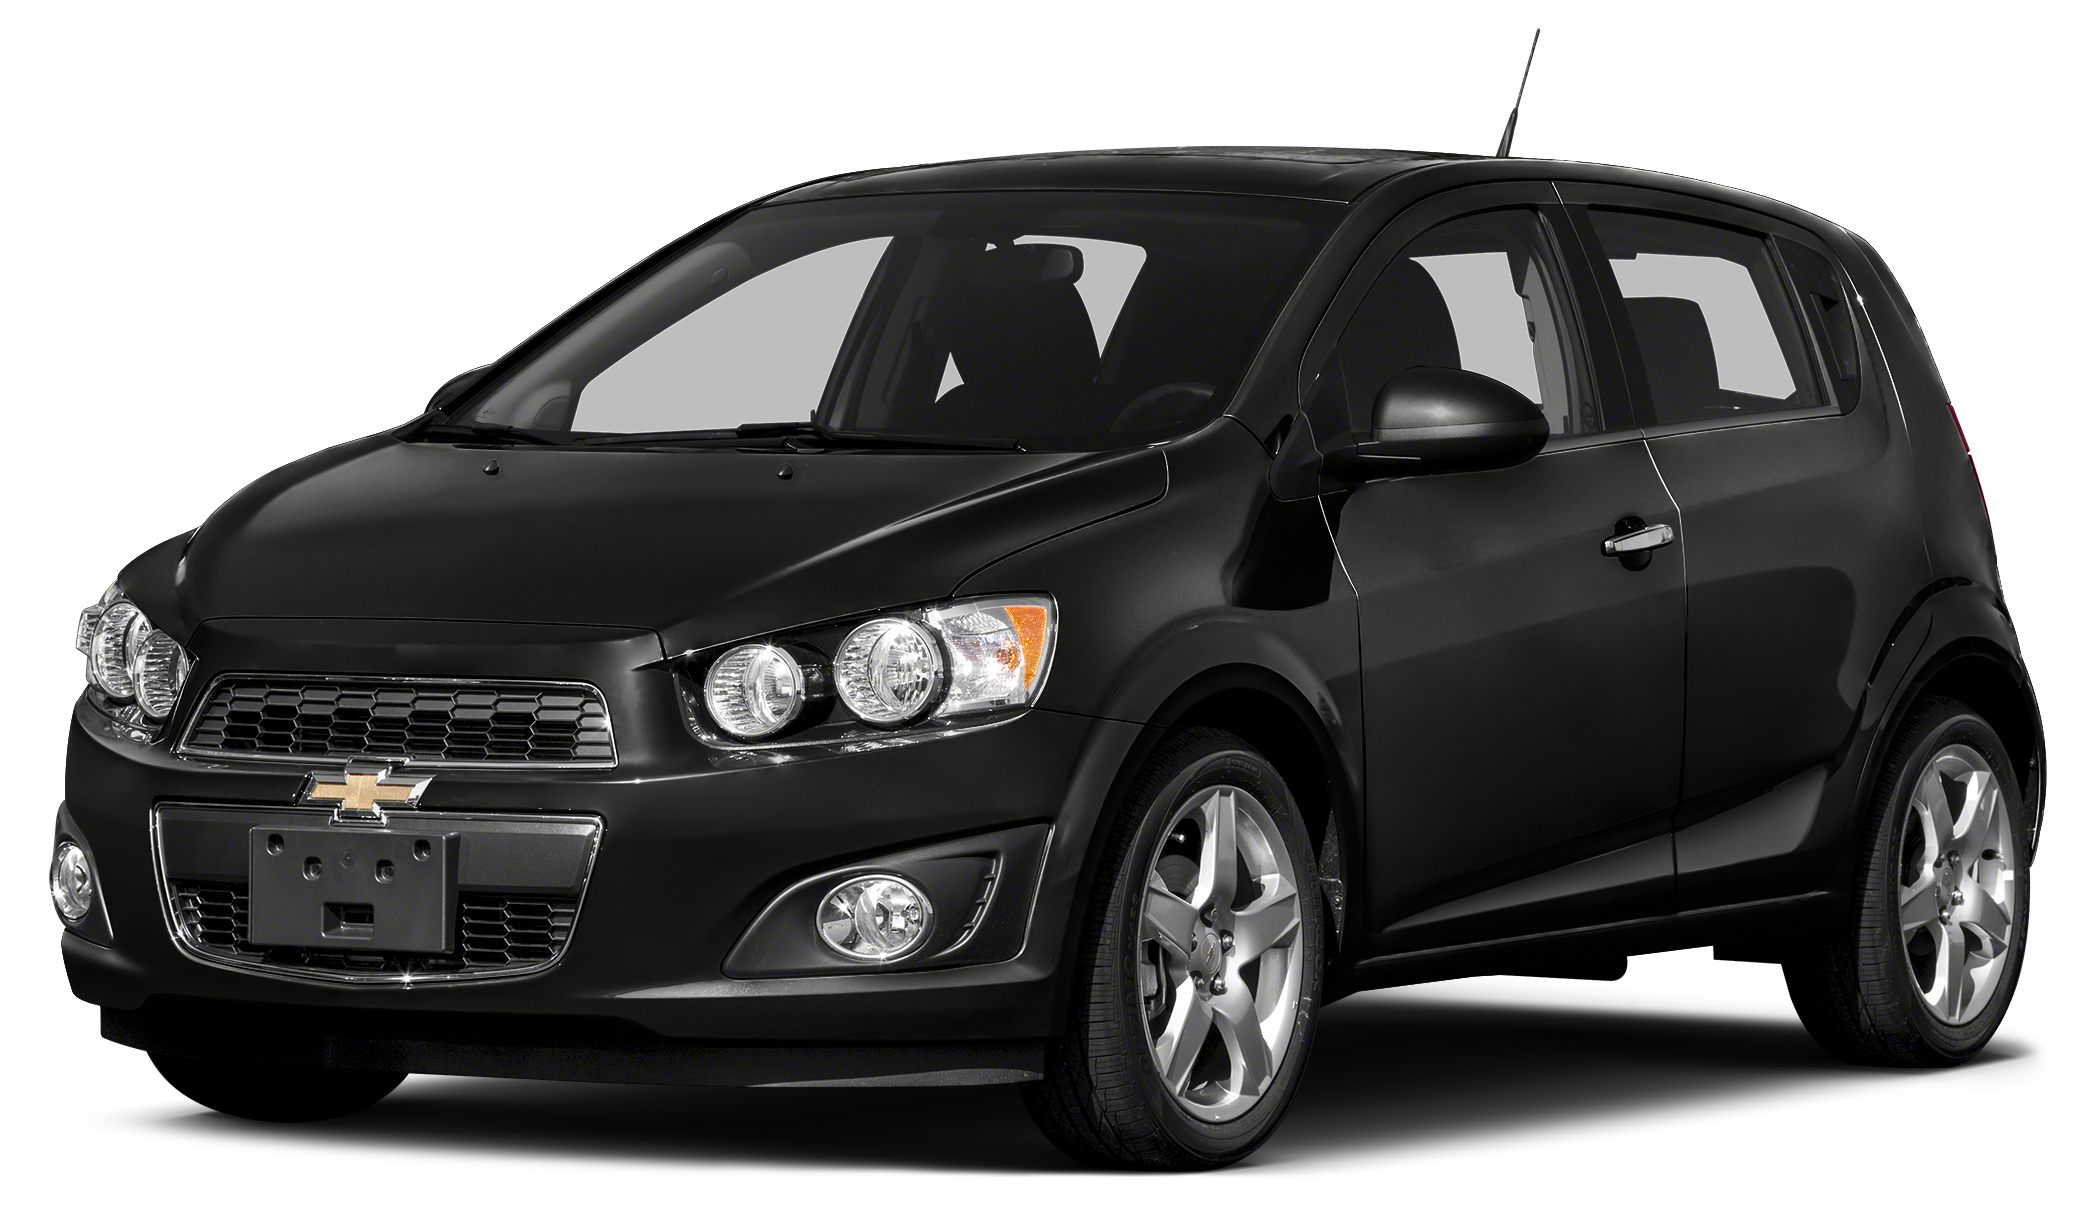 2015 Chevrolet Sonic LT DISCLAIMER We are excited to offer this vehicle to you but it is currentl